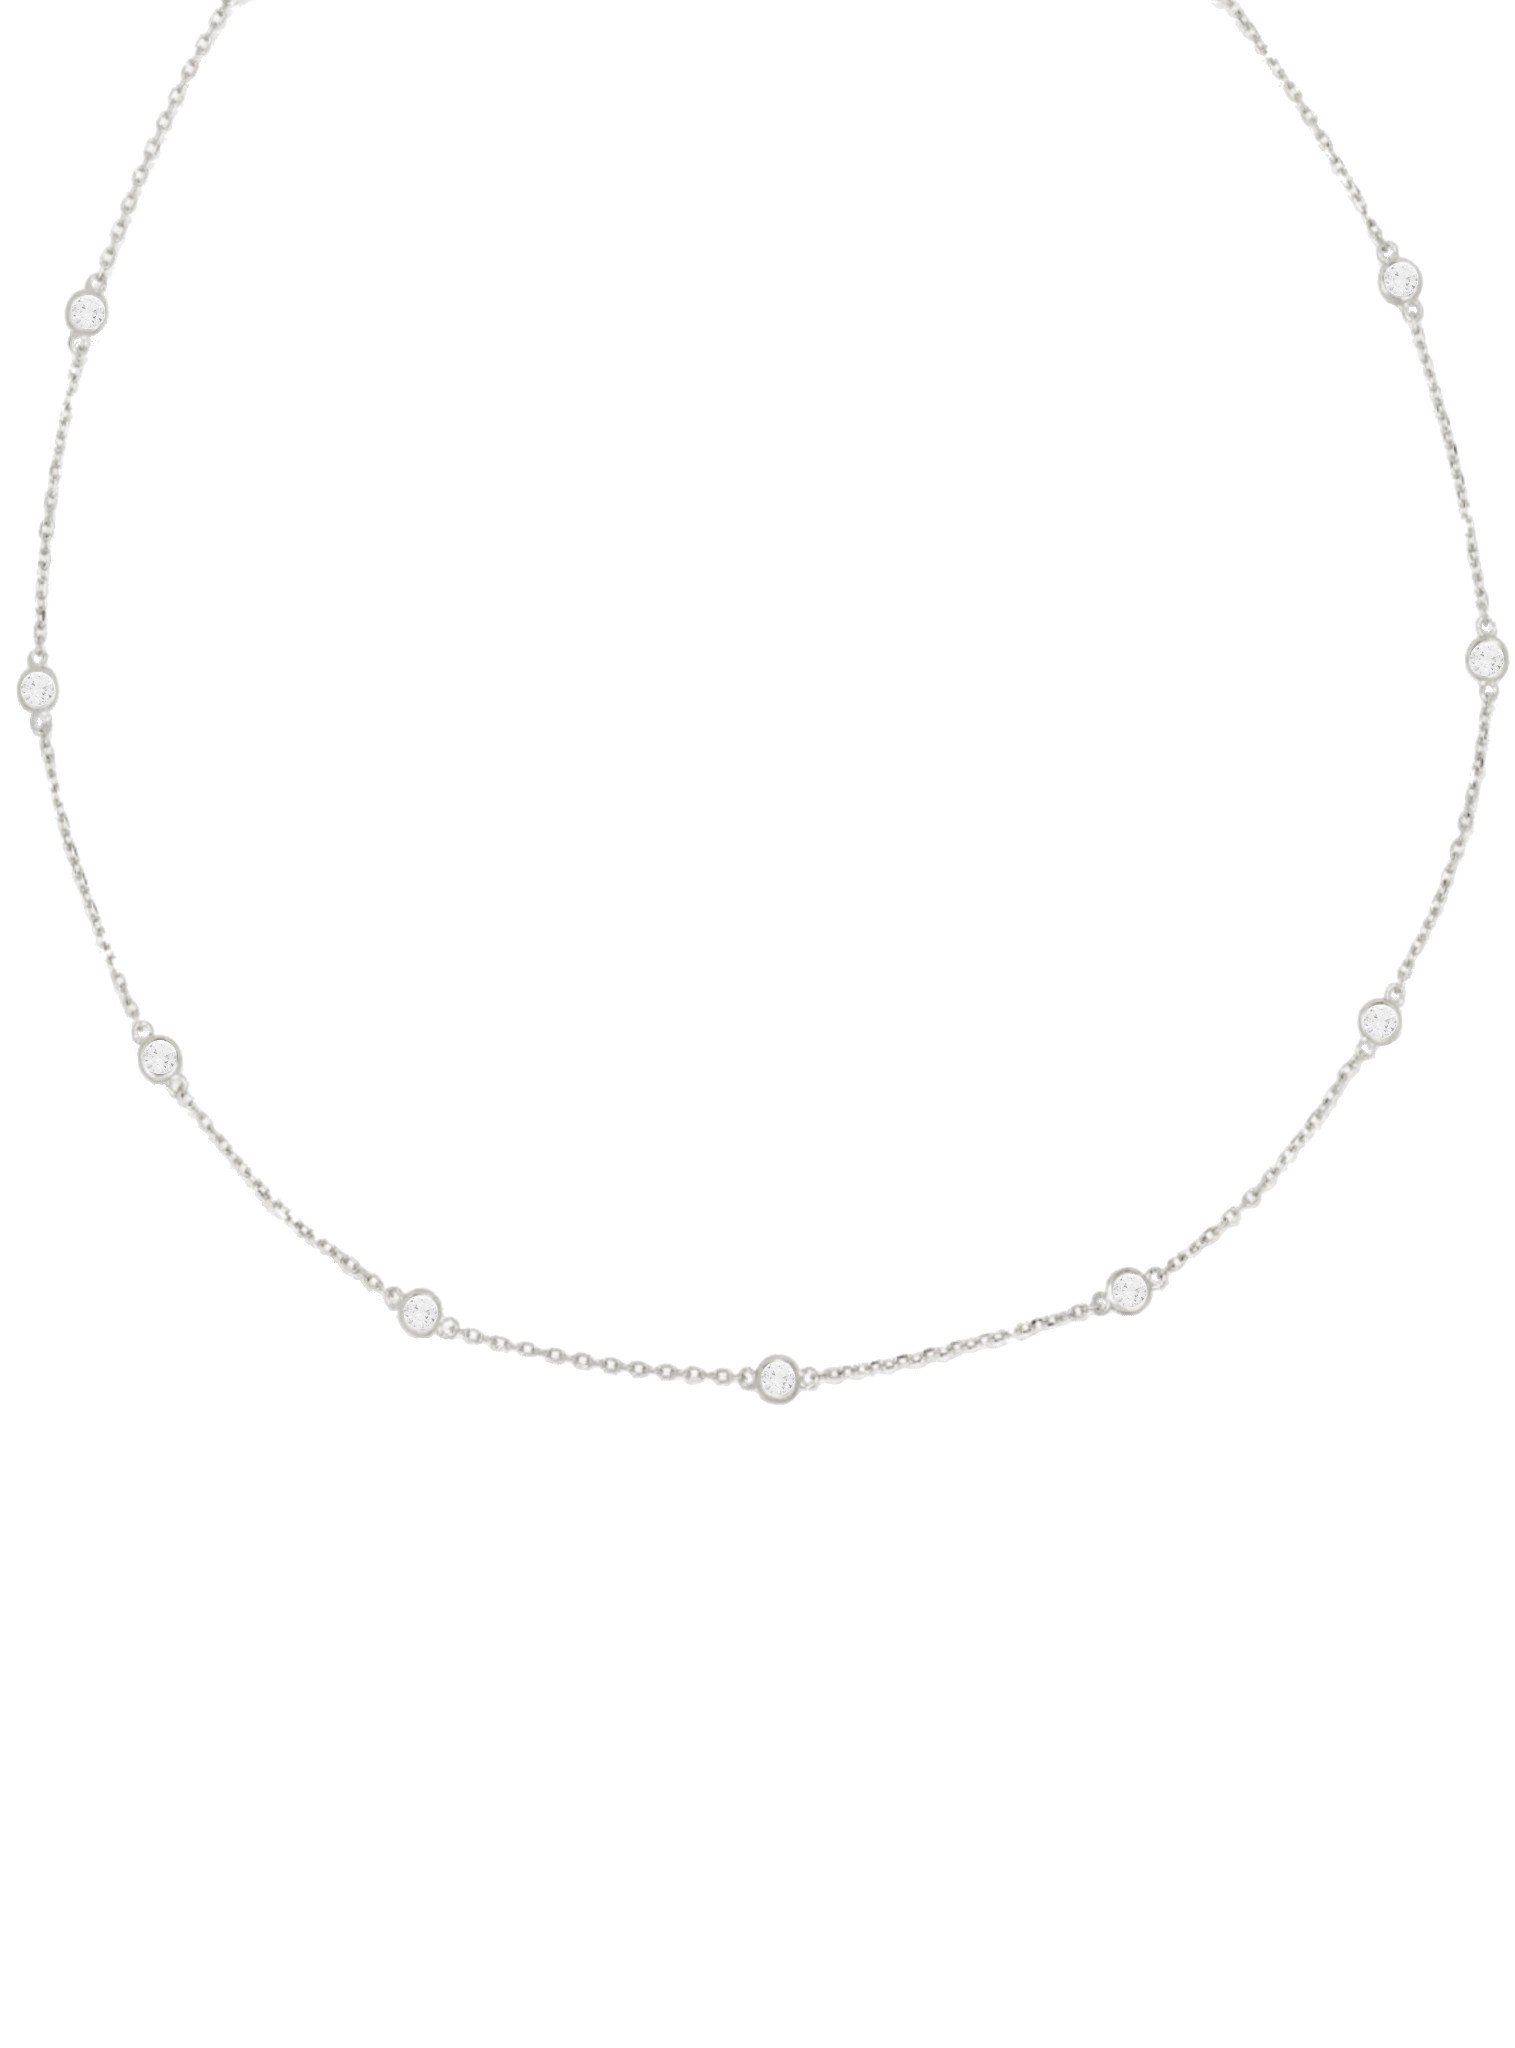 Arya CZ Scattered Necklace in Sterling Silver